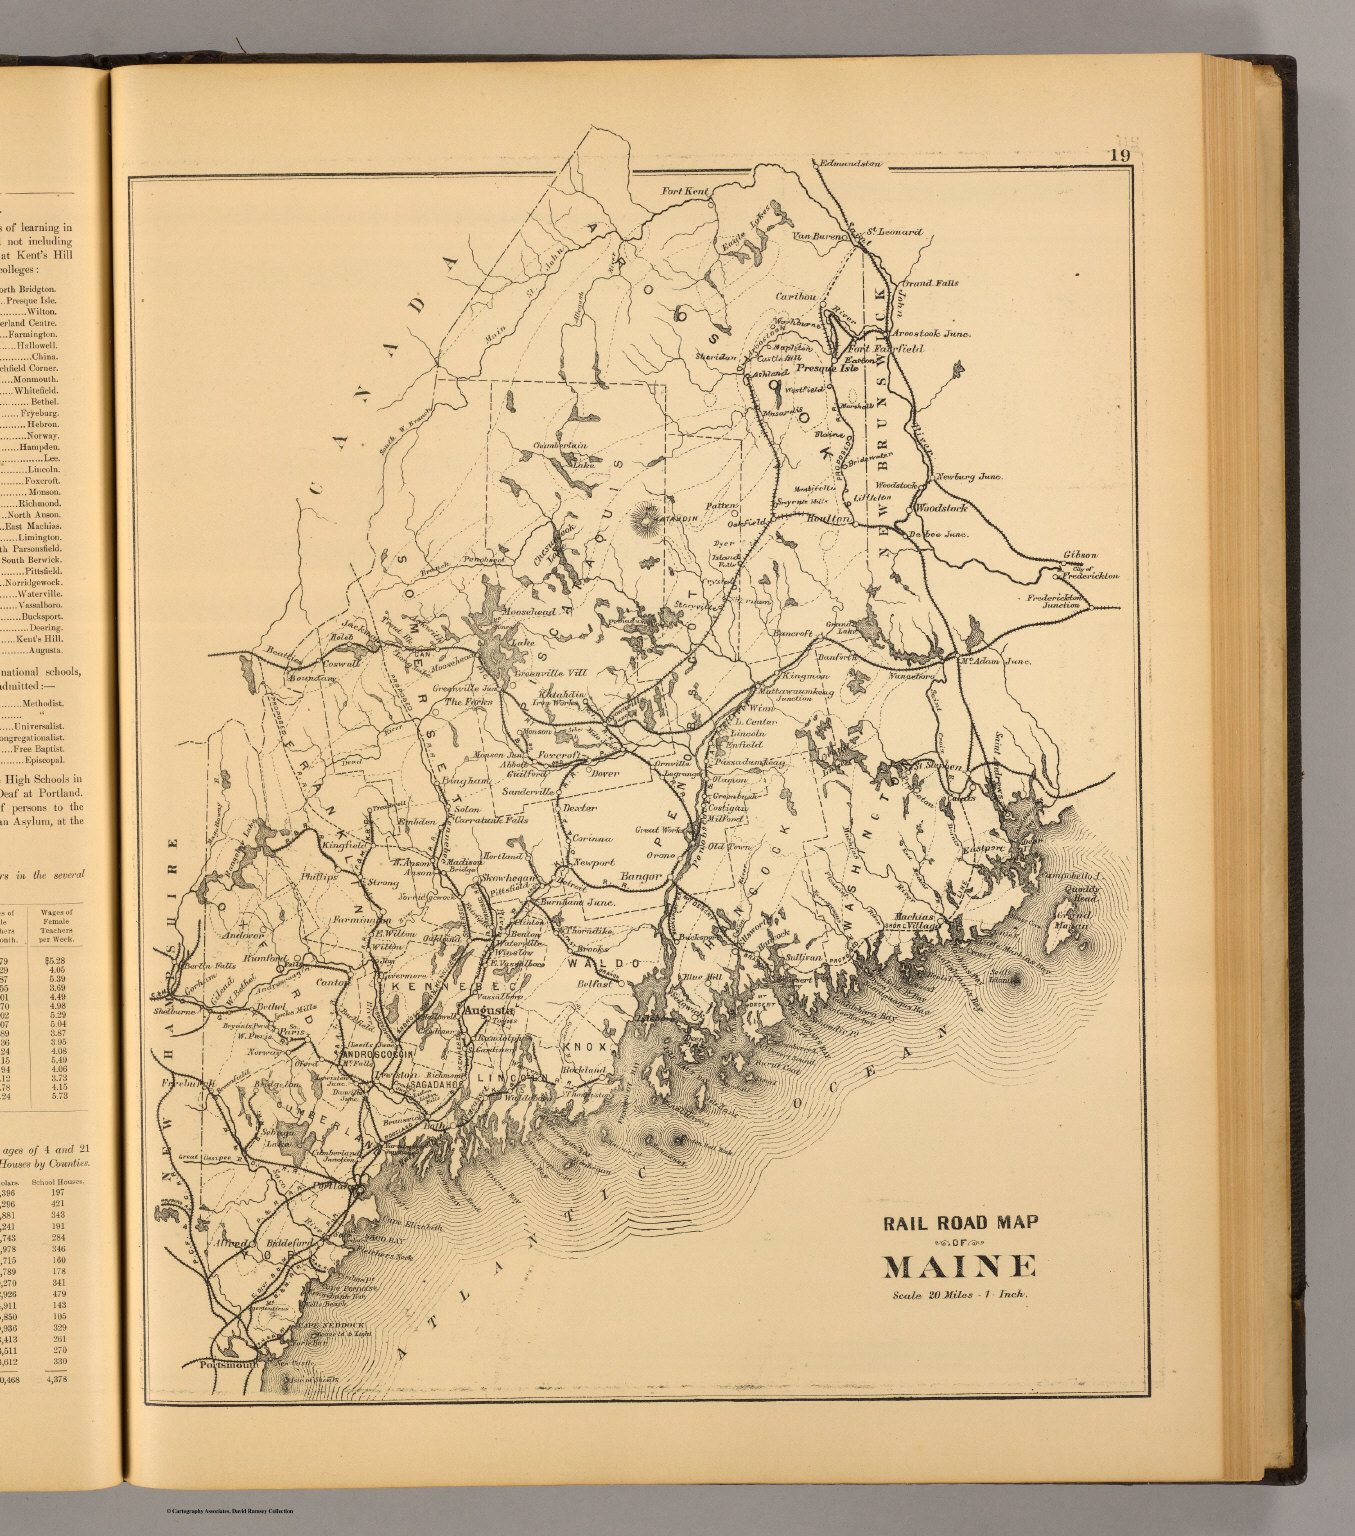 Railroad Map Of Maine David Rumsey Historical Map Collection - Railway map usa 1890